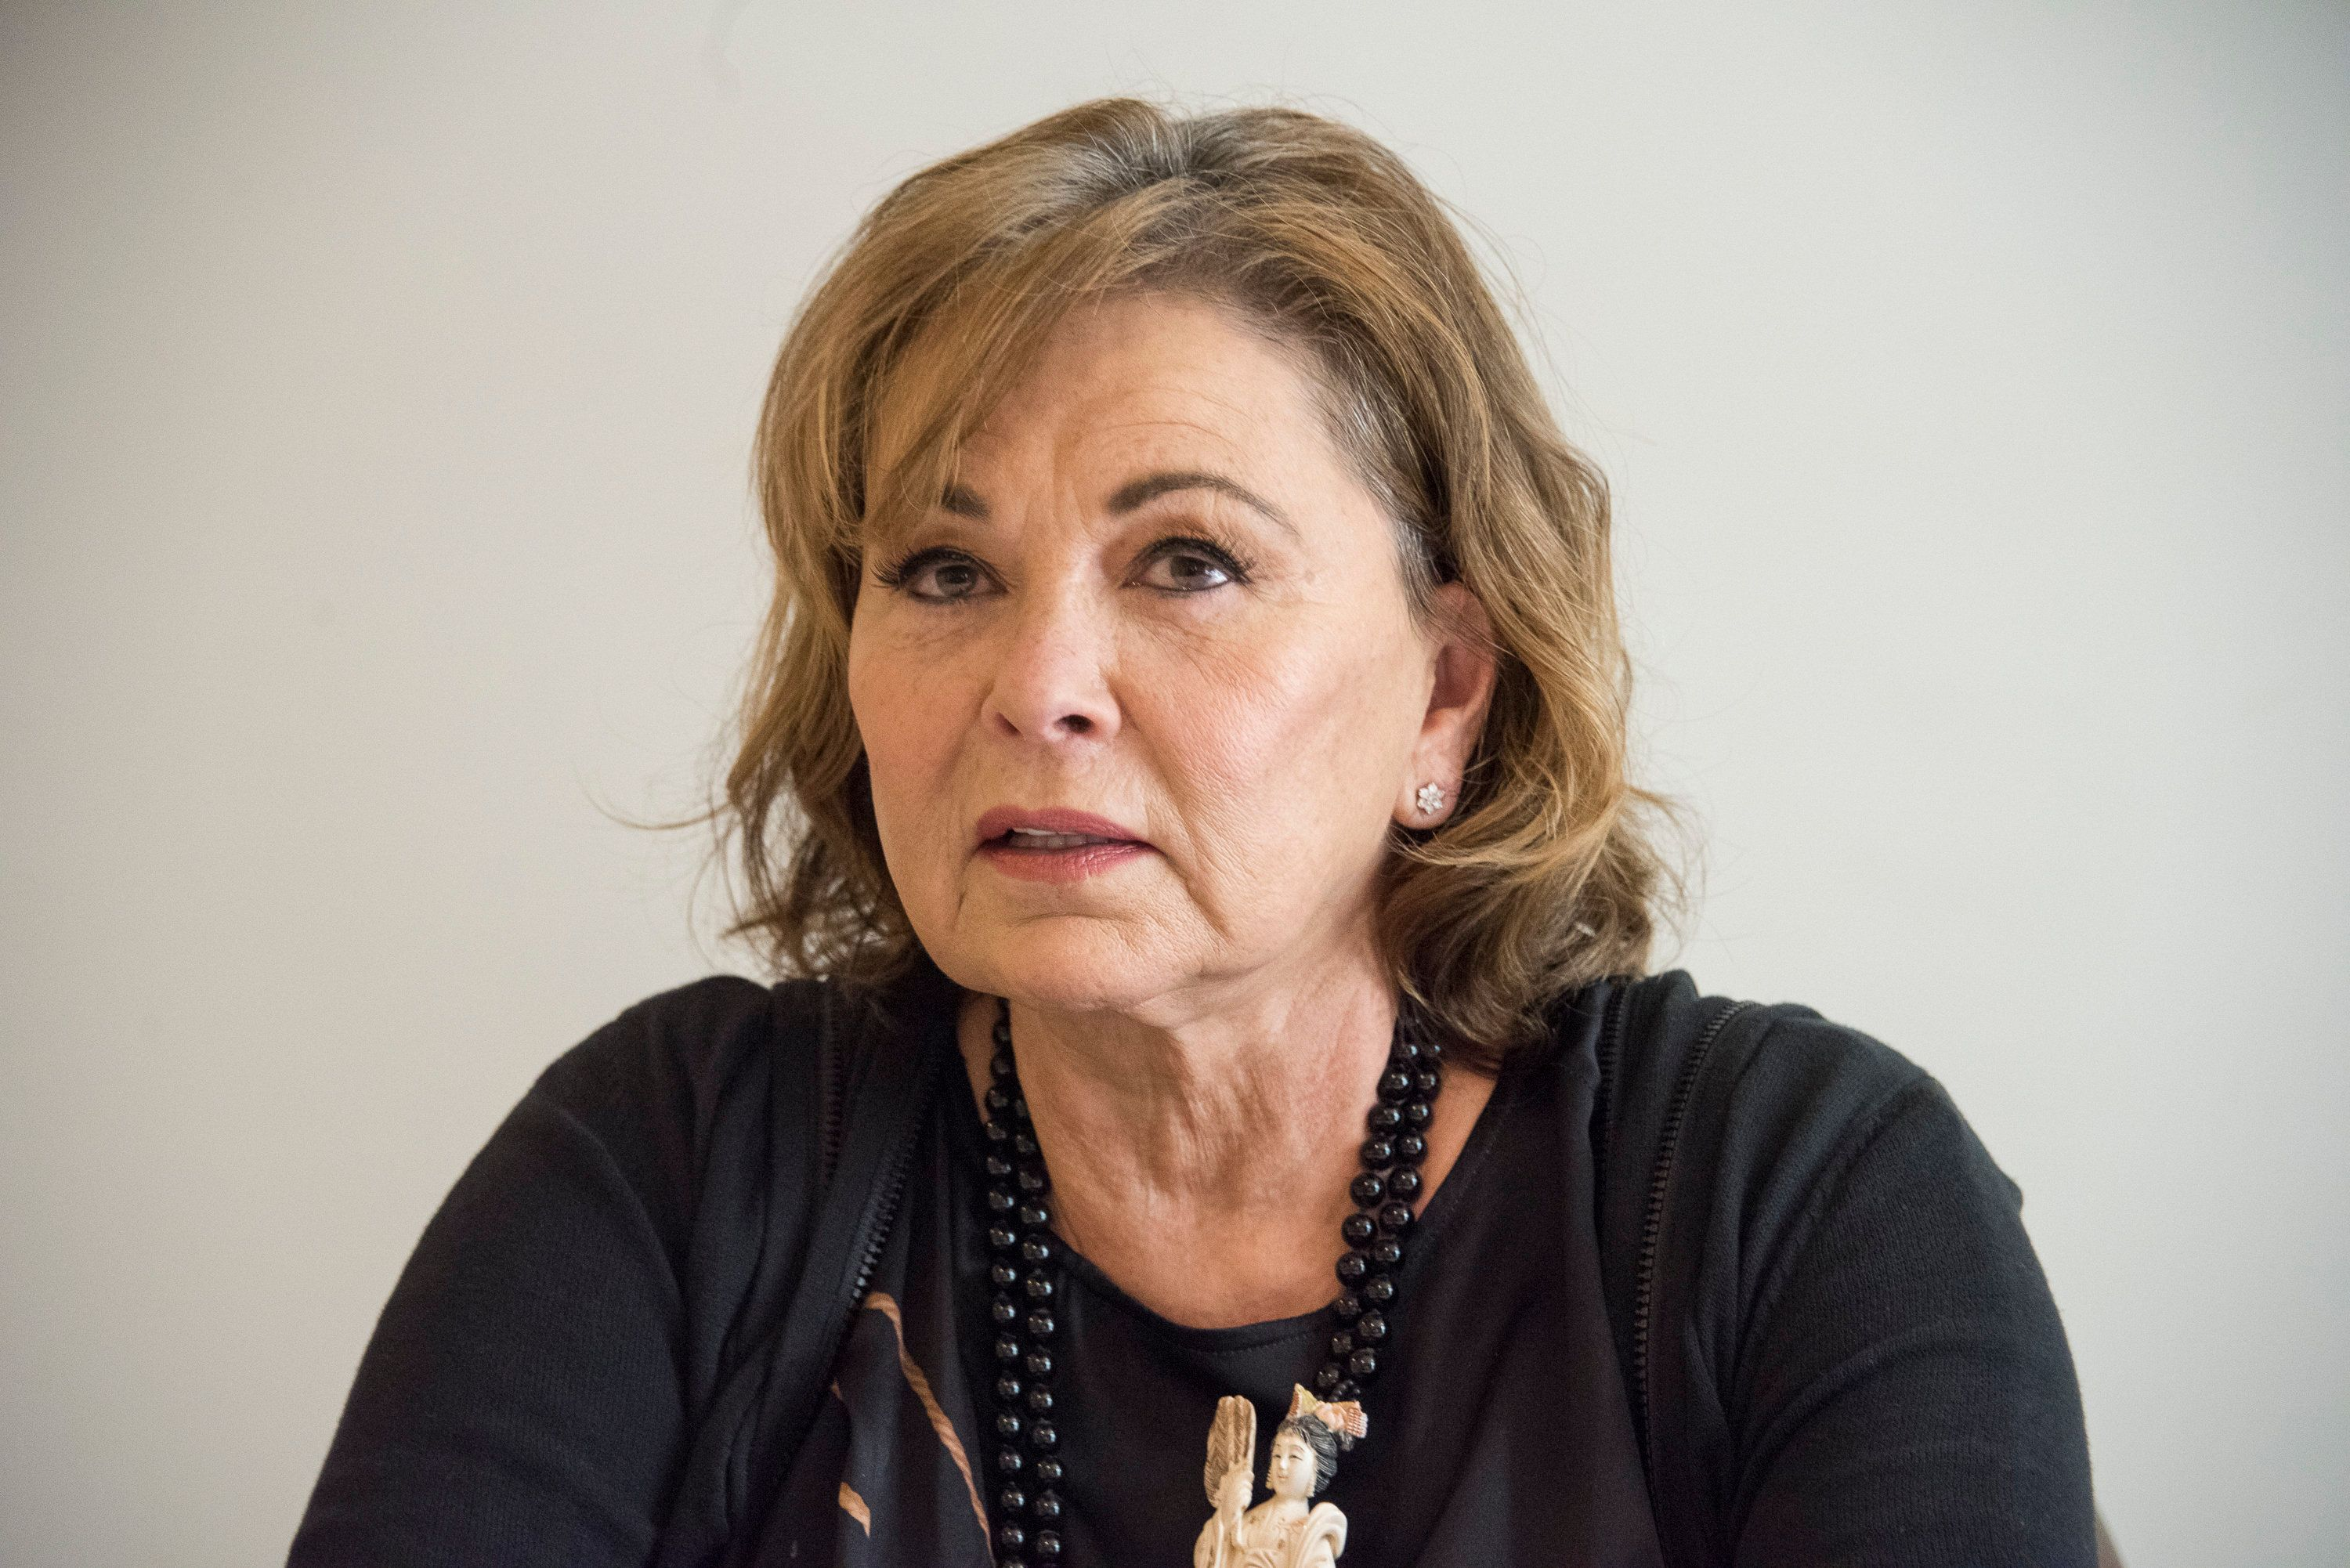 Roseanne Barr claims 'Planet of the Apes' tweet was 'about anti-Semitism'